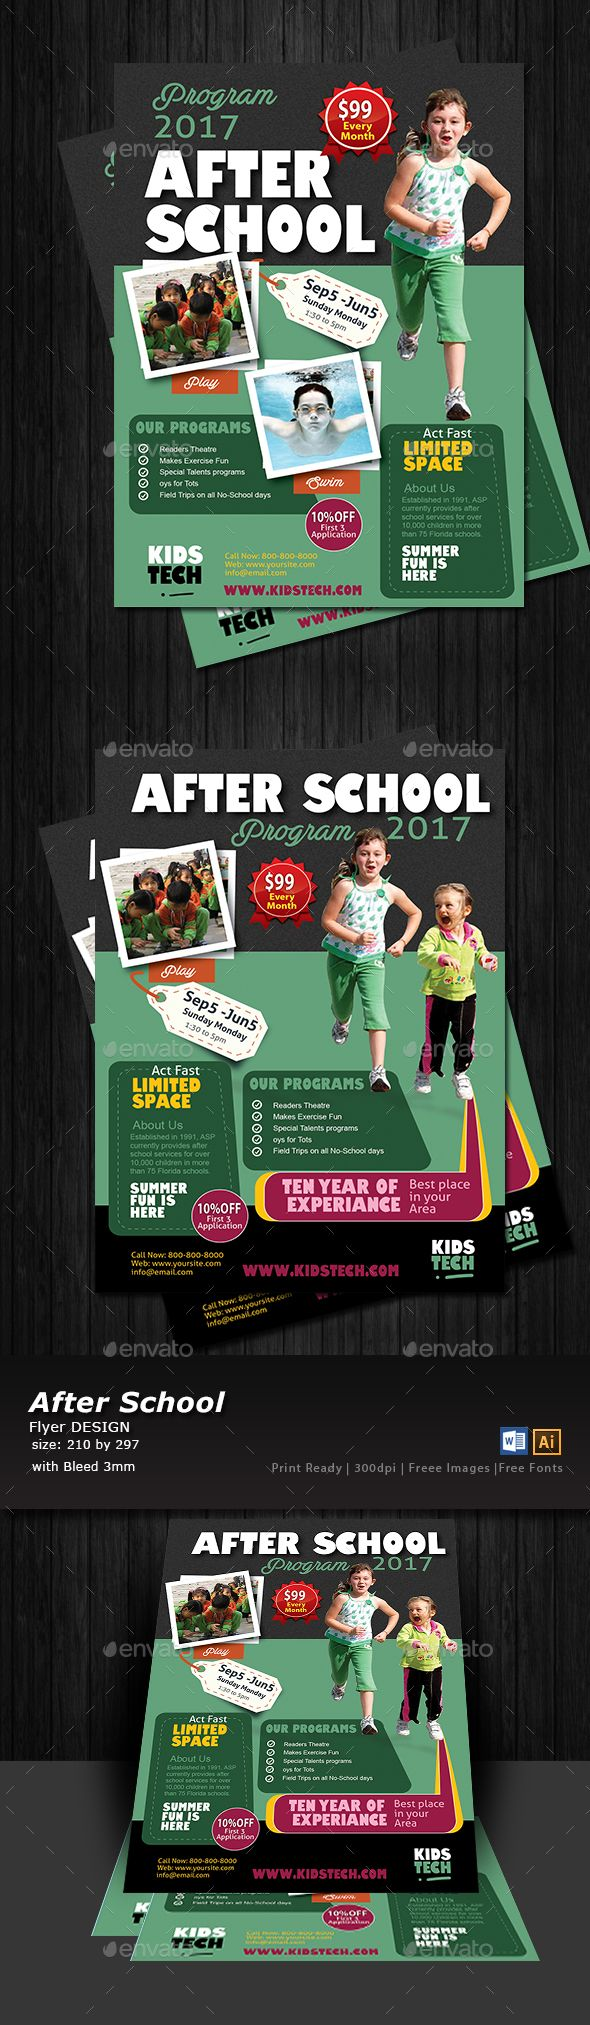 After School Program Flyer Design Templates - Flyers Print Template Vector EPS, AI Illustrator. Download here: https://graphicriver.net/item/after-school-program-flyer-templates/17347505?ref=yinkira